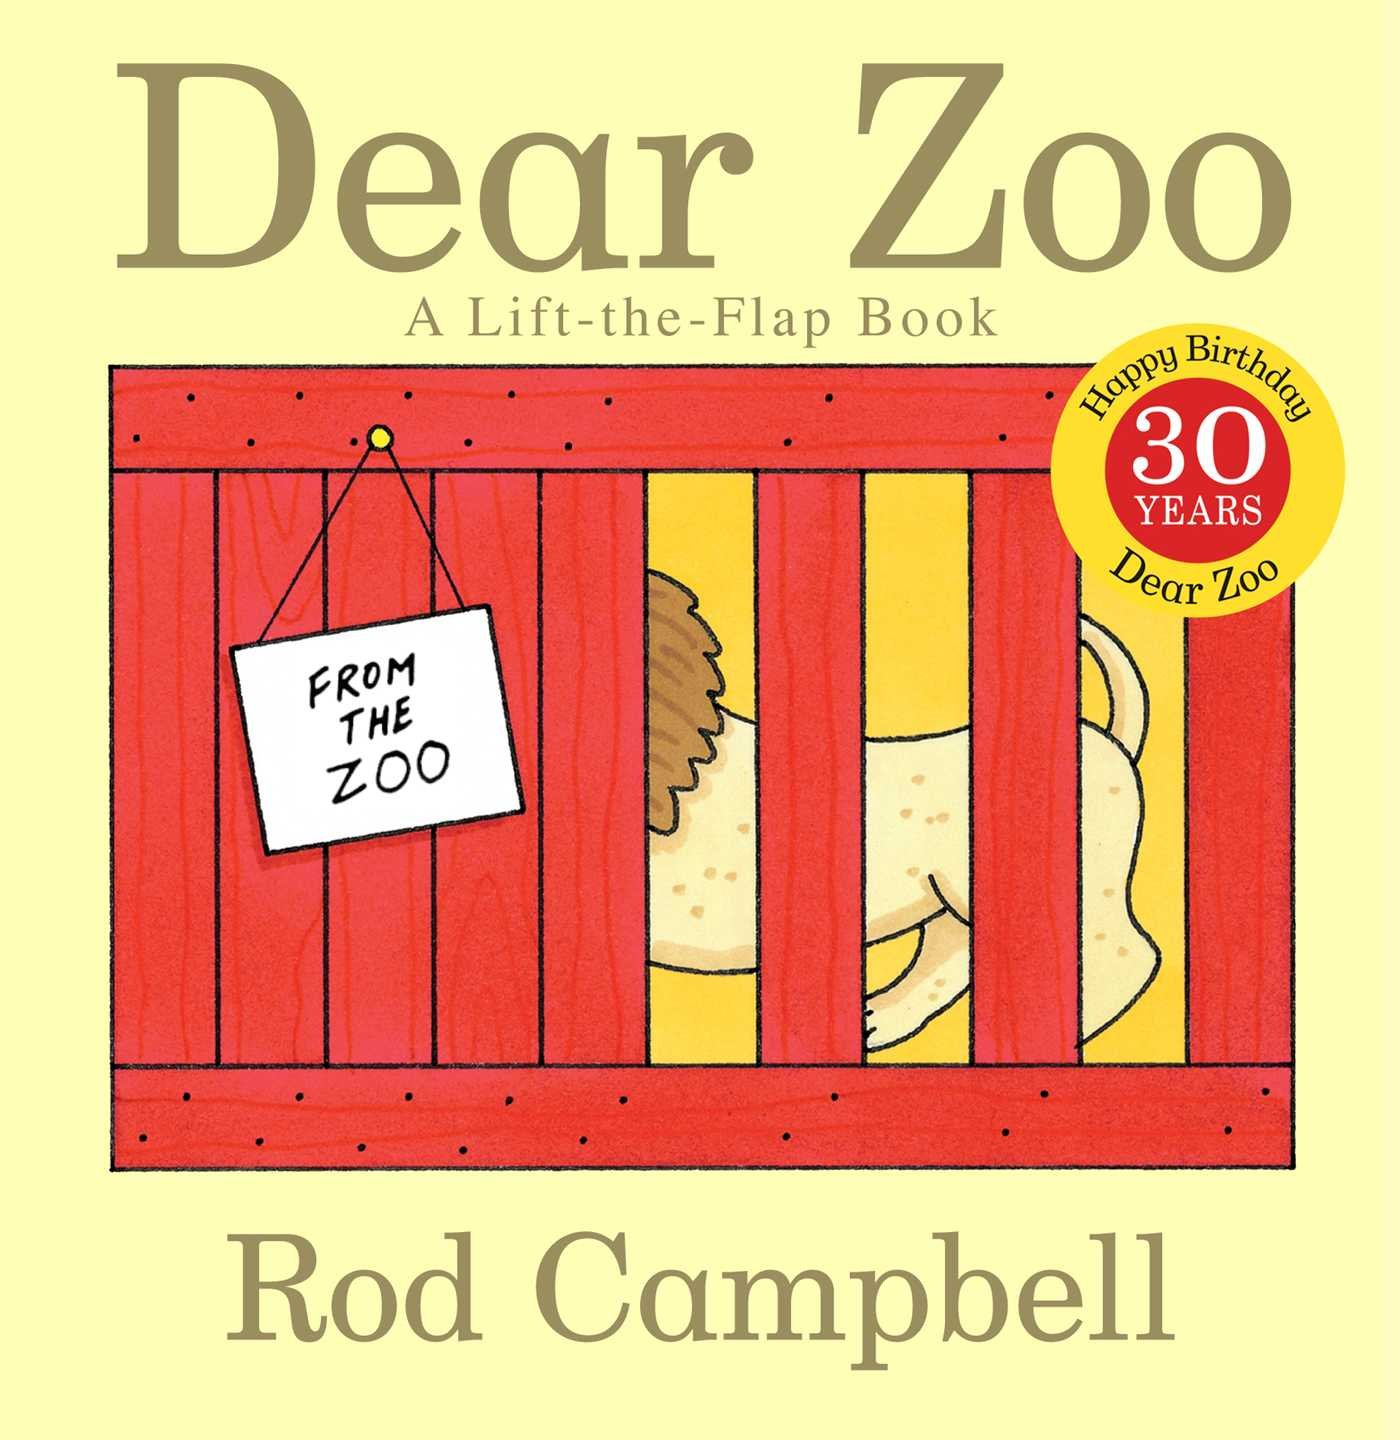 Zoo clipart dear zoo. A lift the flap